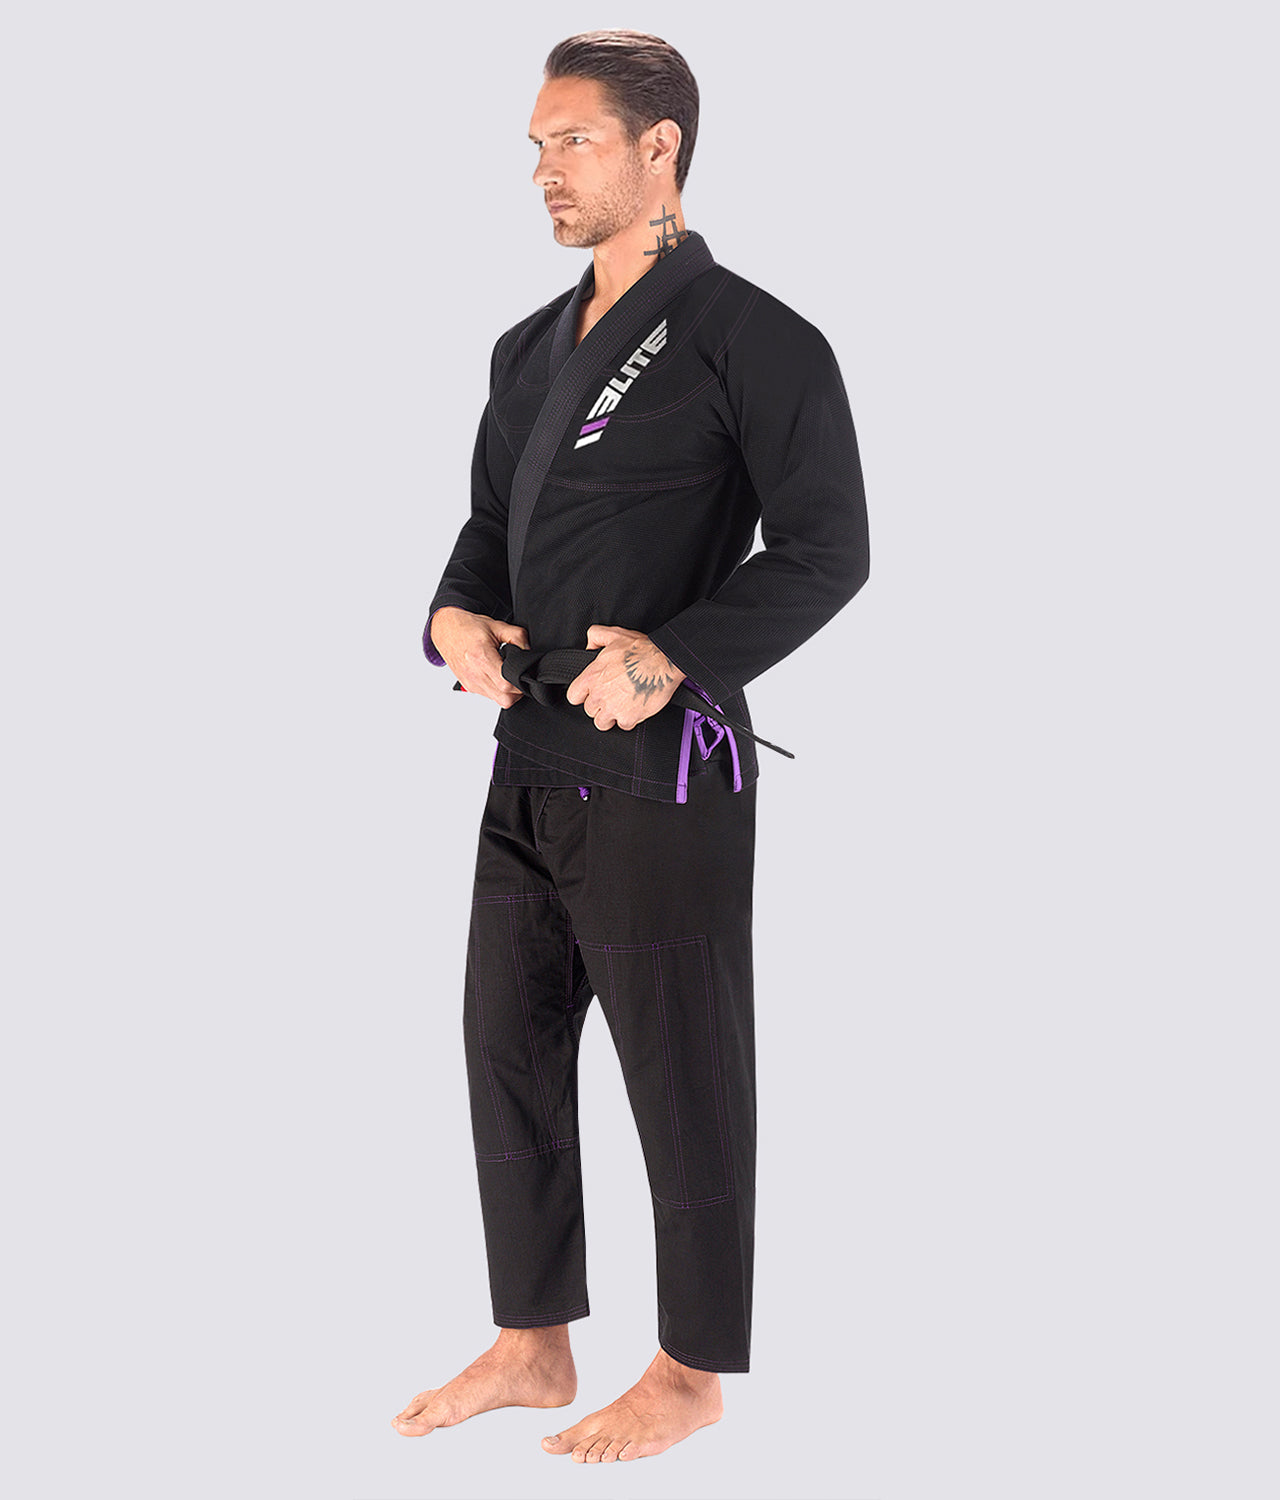 Elite Sports Ultra Light Preshrunk Anti-Odor Black Adult Brazilian Jiu Jitsu BJJ Gi  With Free White Belt